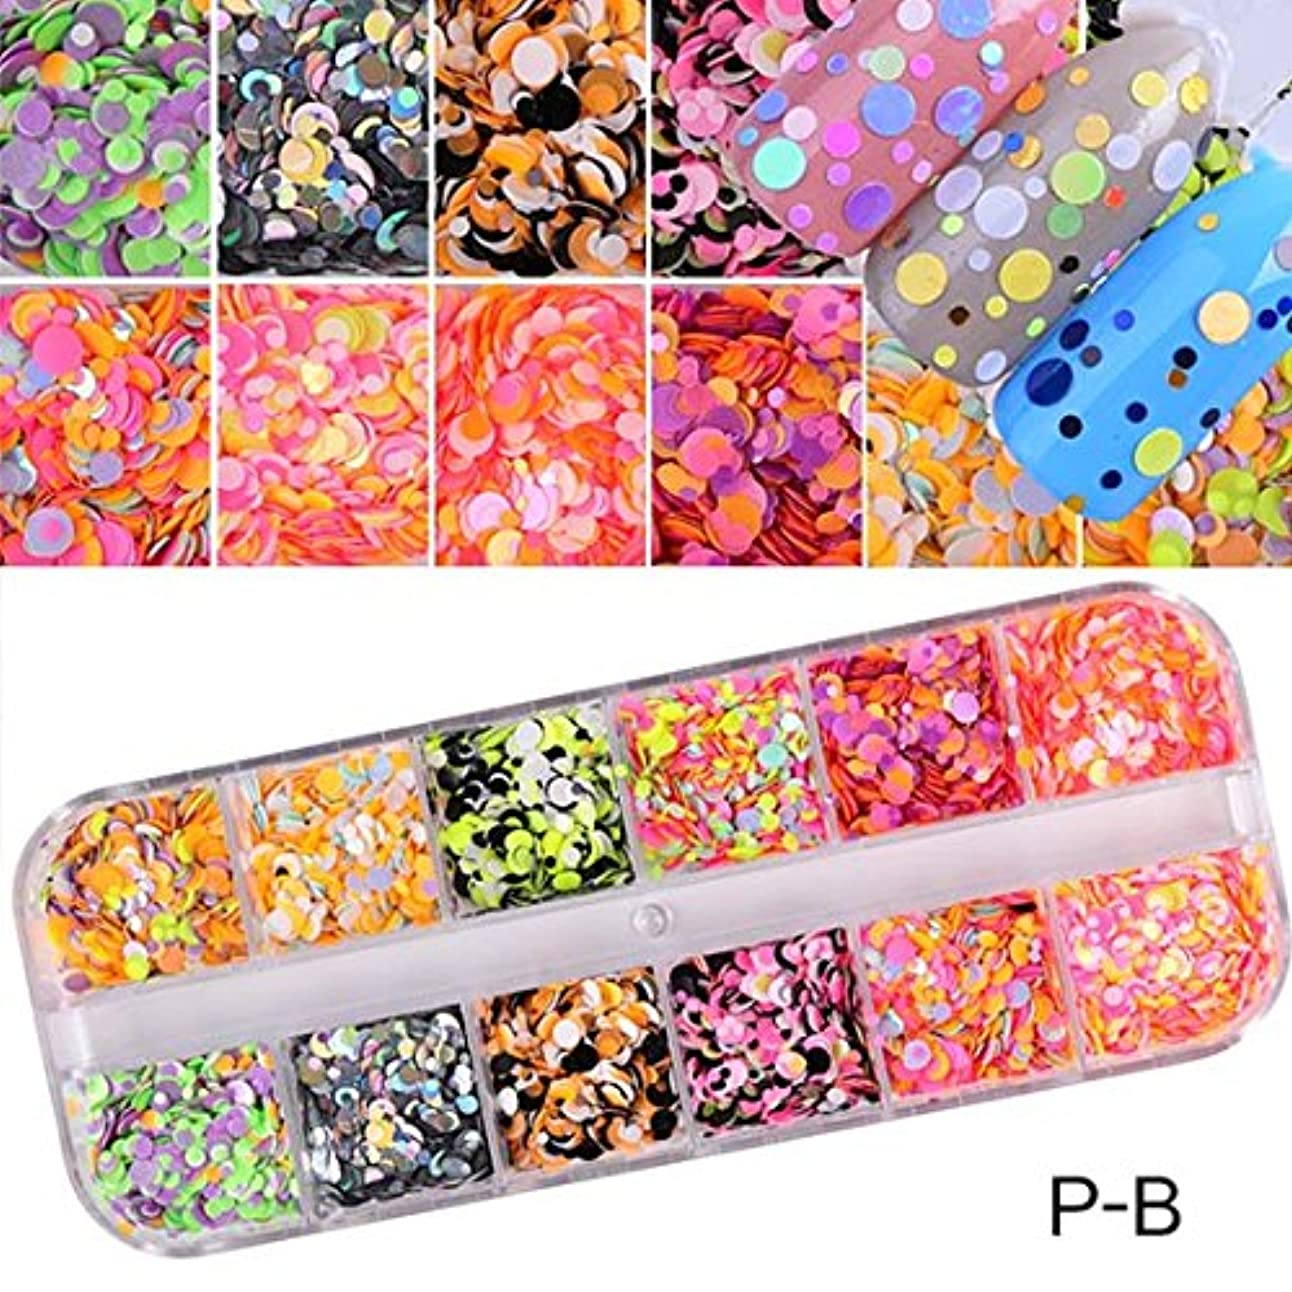 障害ひねくれたクラス1 Set Dazzling Round Nail Glitter Sequins Dust Mixed 12 Grids 1/2/3mm DIY Charm Polish Flakes Decorations Manicure...